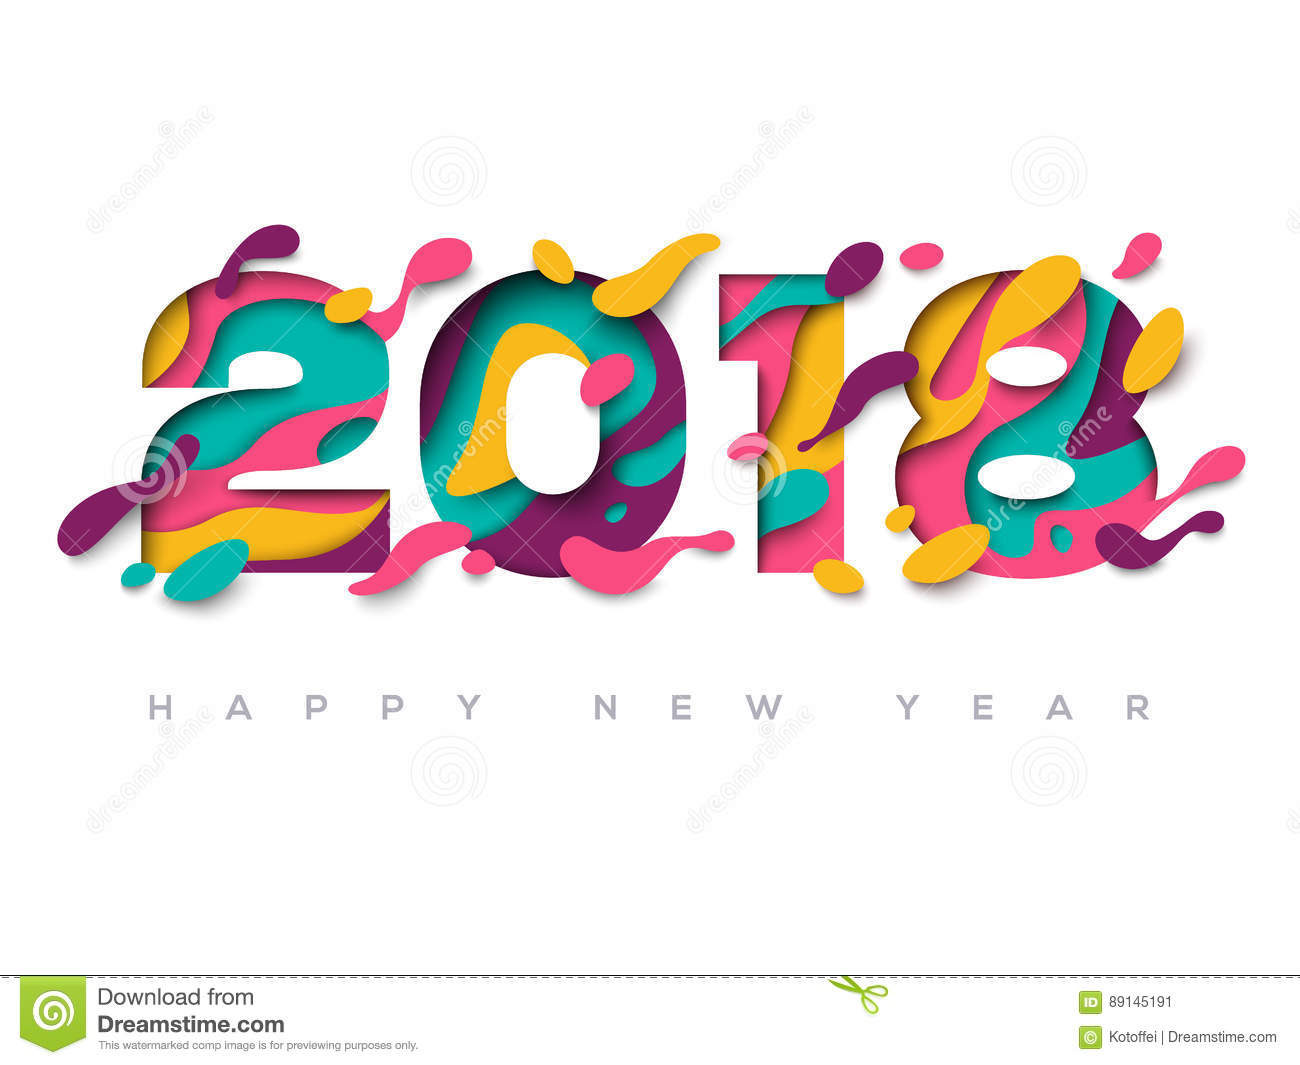 2018 happy new year greeting card with abstract paper cut shapes on white background vector illustration colorful 3d carving art